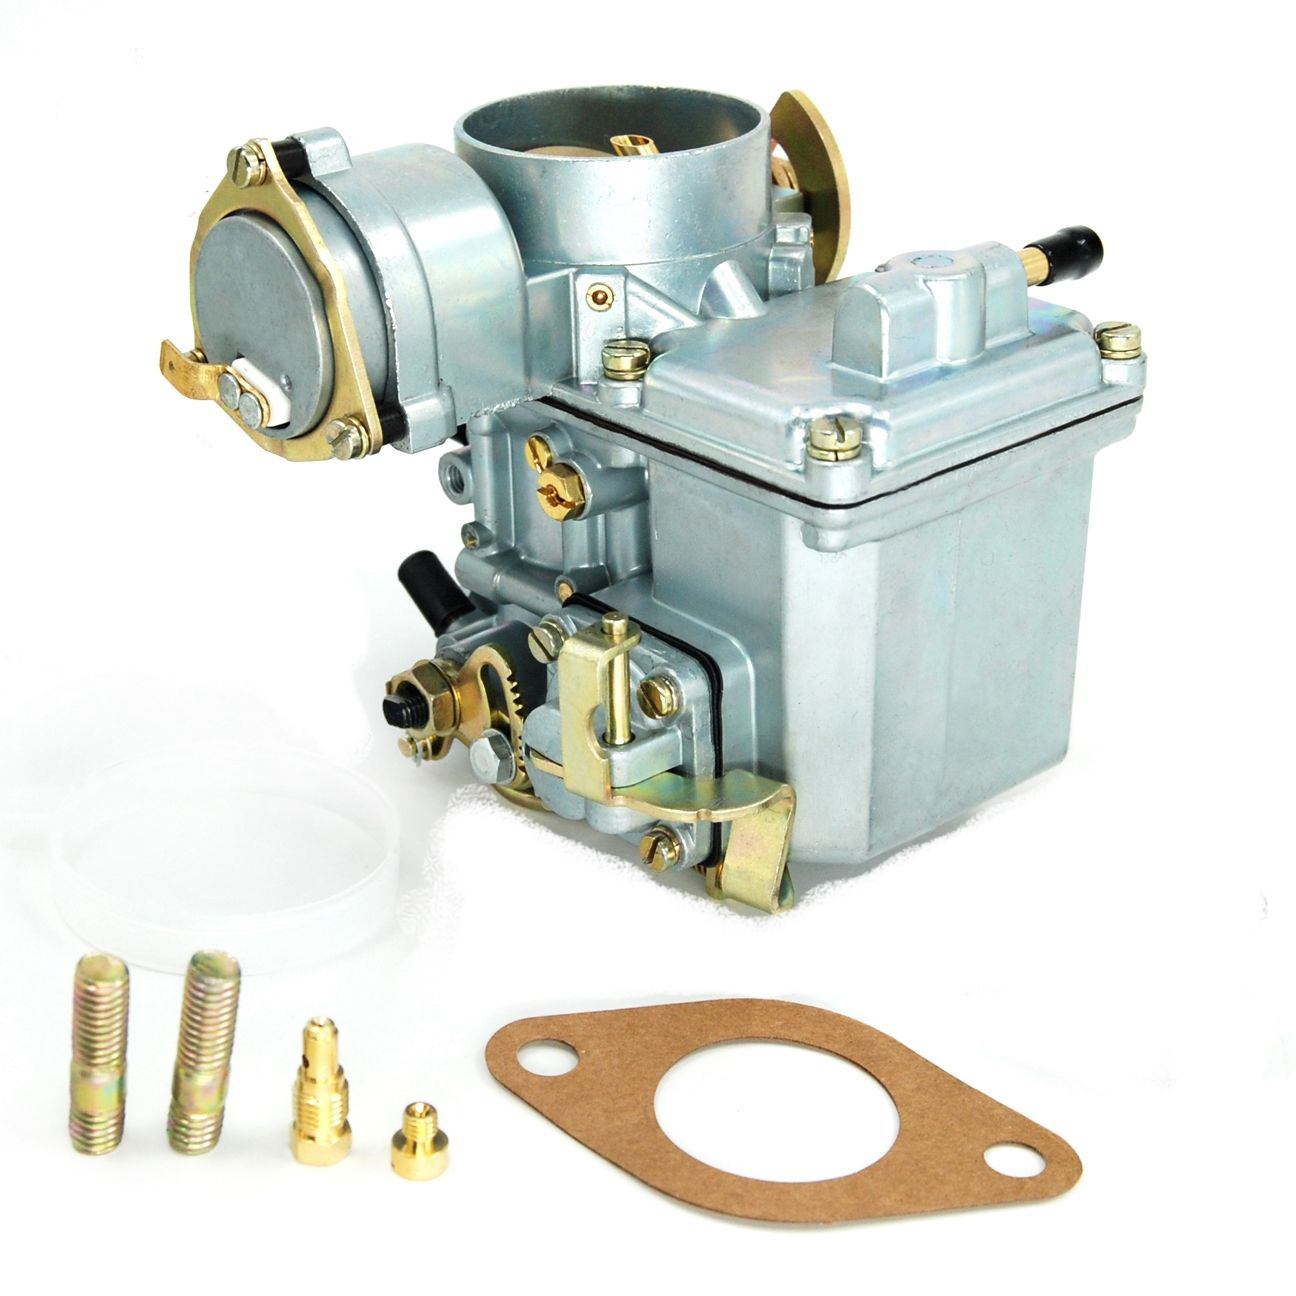 Carburetor 34 PICT-3 Dual Port Air Cooled Type 1 Engine for VW Super ...